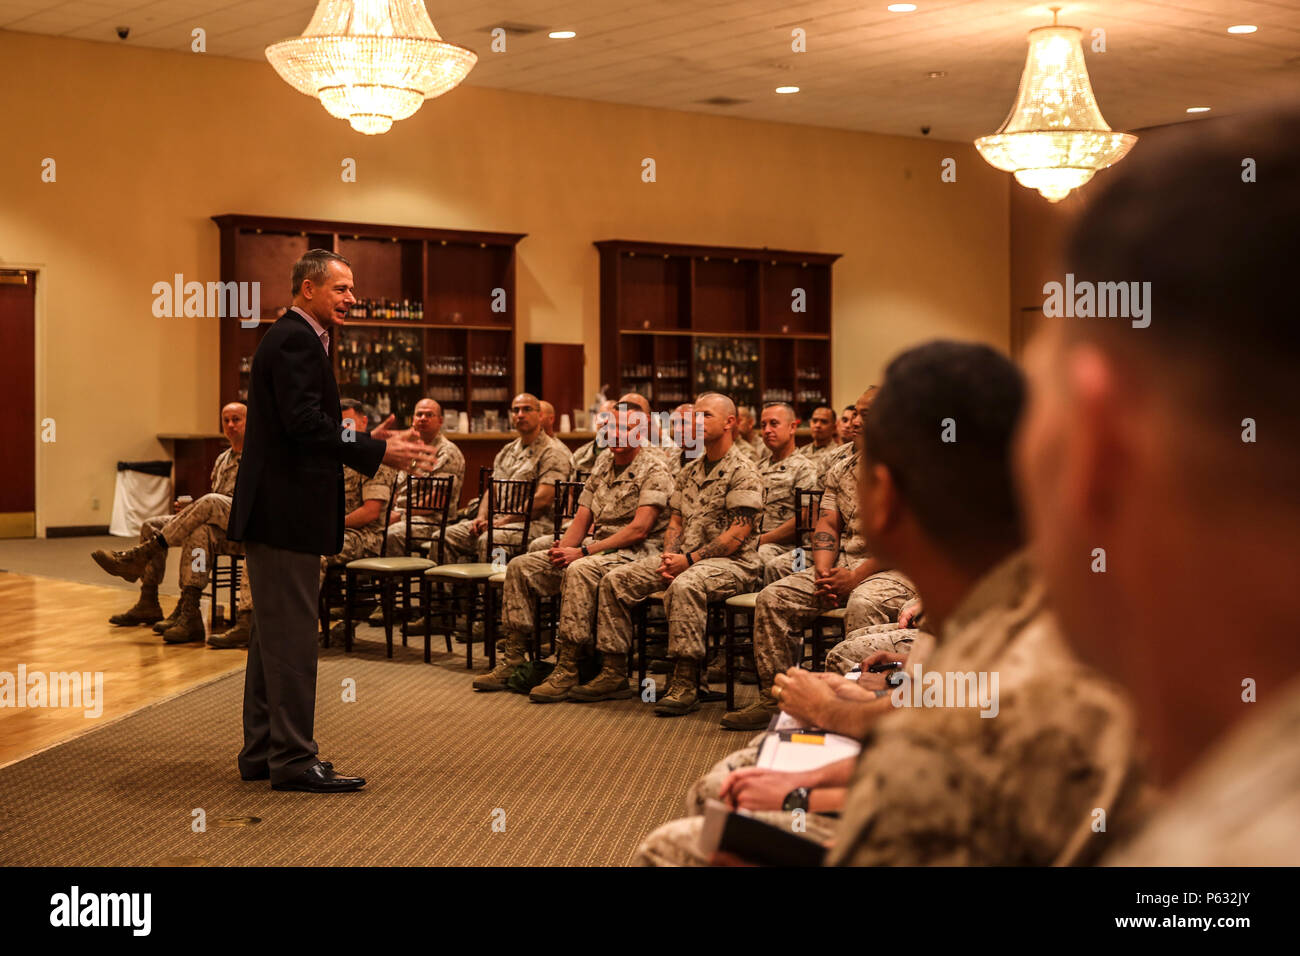 MARINE CORPS BASE CAMP PENDLETON, Calif. – Retired Gen. Peter Pace, former Chairman of the Joint Chiefs of Staff, addresses a room of senior enlisted Marines and sailors during an E-9 symposium at Camp Pendleton April 8, 2016. Pace was the guest speaker for the event and led participants on a guided discussion. During the conference, Marines broke into groups with each one discussing ethics, leadership development and styles, and ways to improve unit readiness. (U.S. Marine Corps photo by Sgt. Emmanuel Ramos/Released) - Stock Image